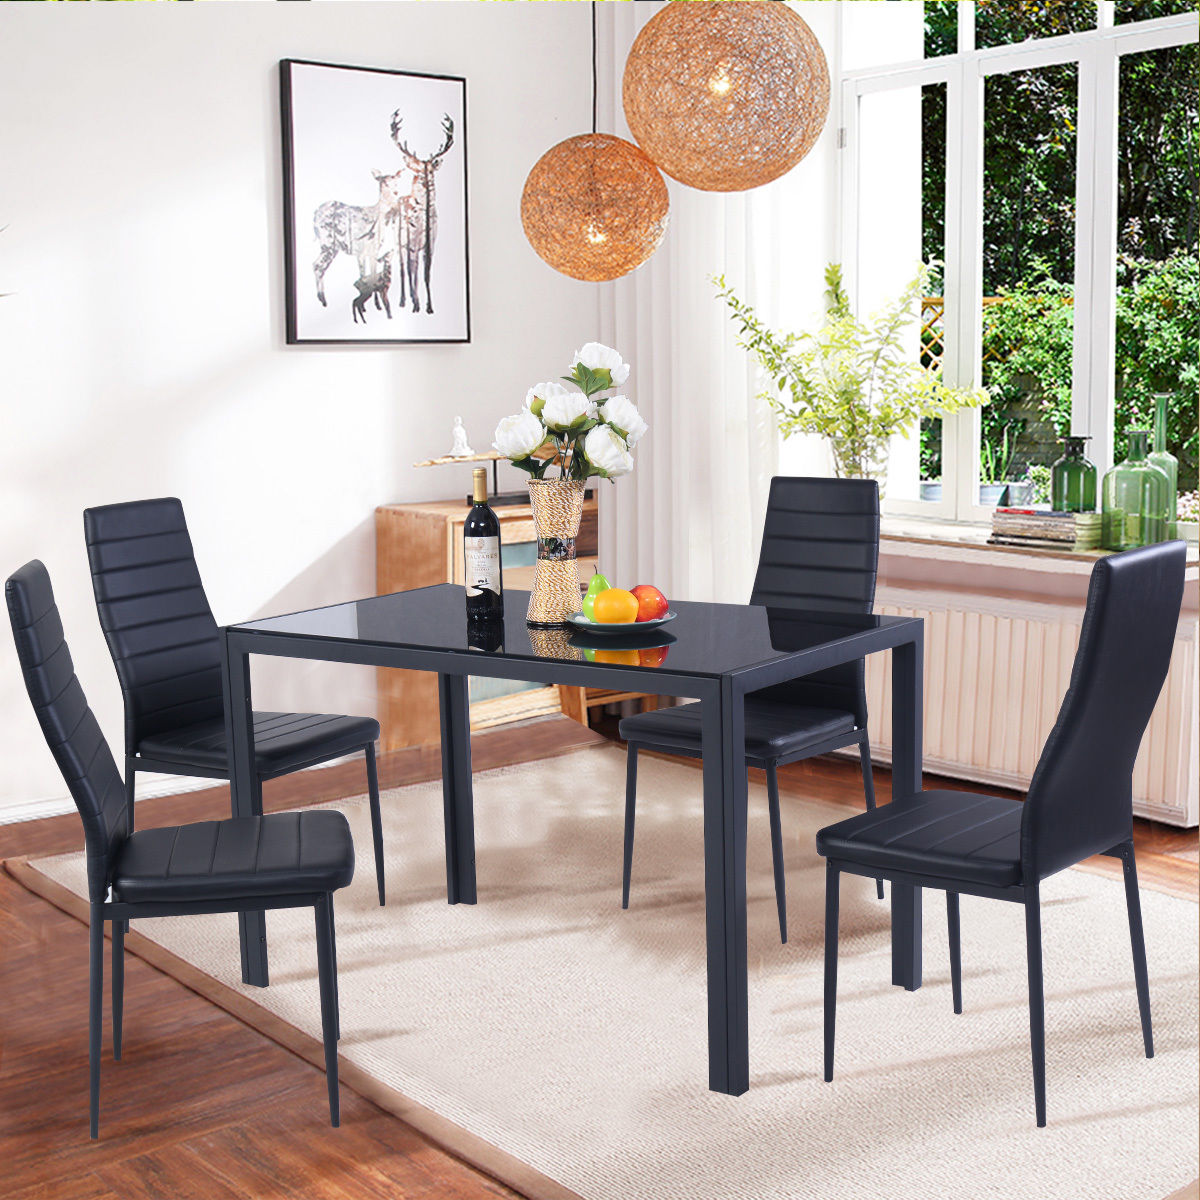 kitchen glass table remodeling on a budget costway 5 piece dining set metal and 4 chairs breakfast furniture walmart com